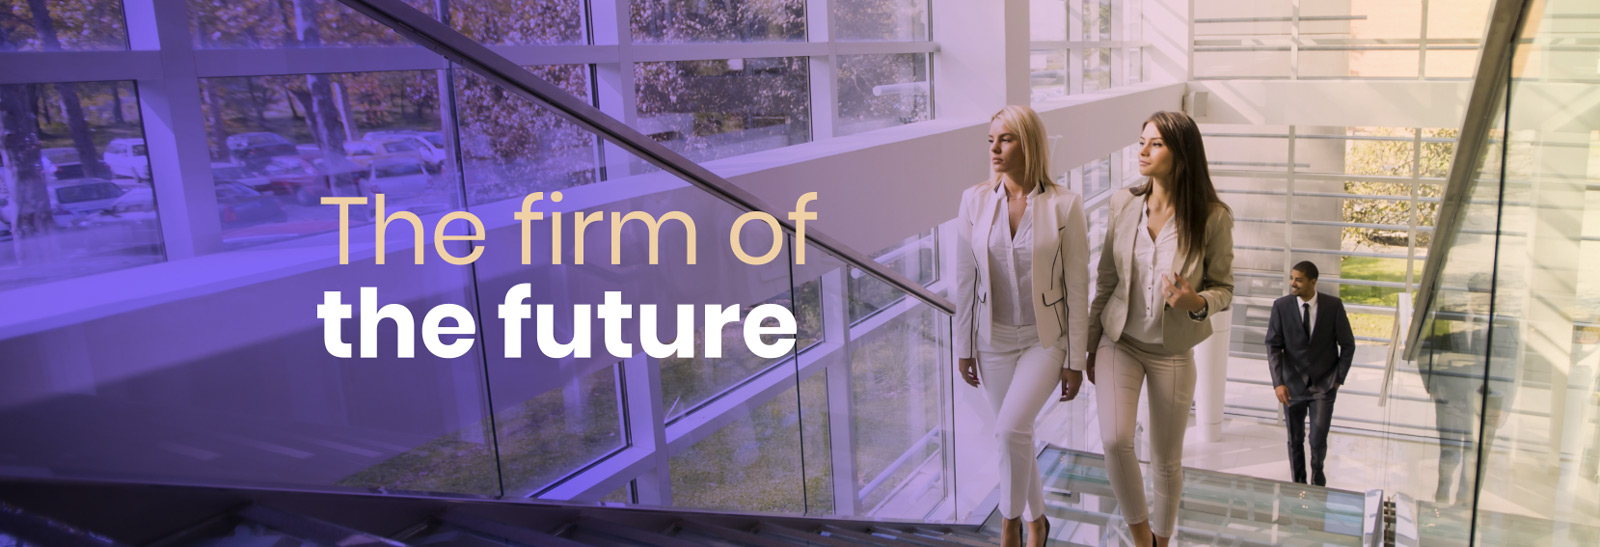 the-firm-of-the-future